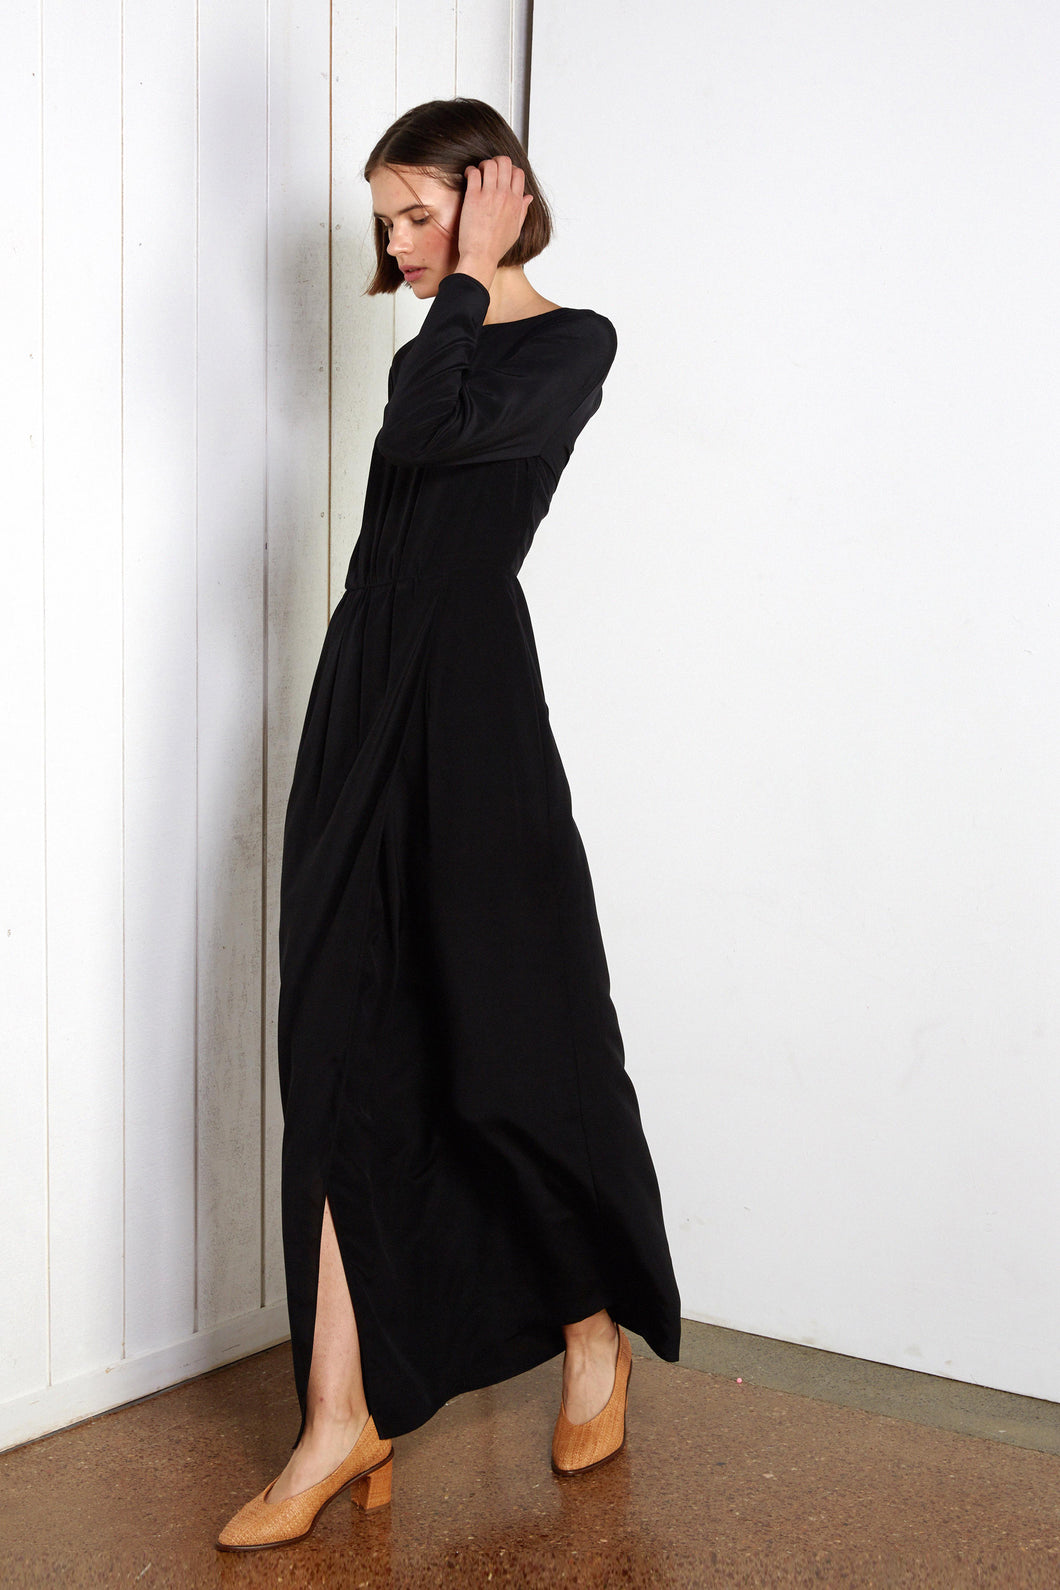 Athens dress, black